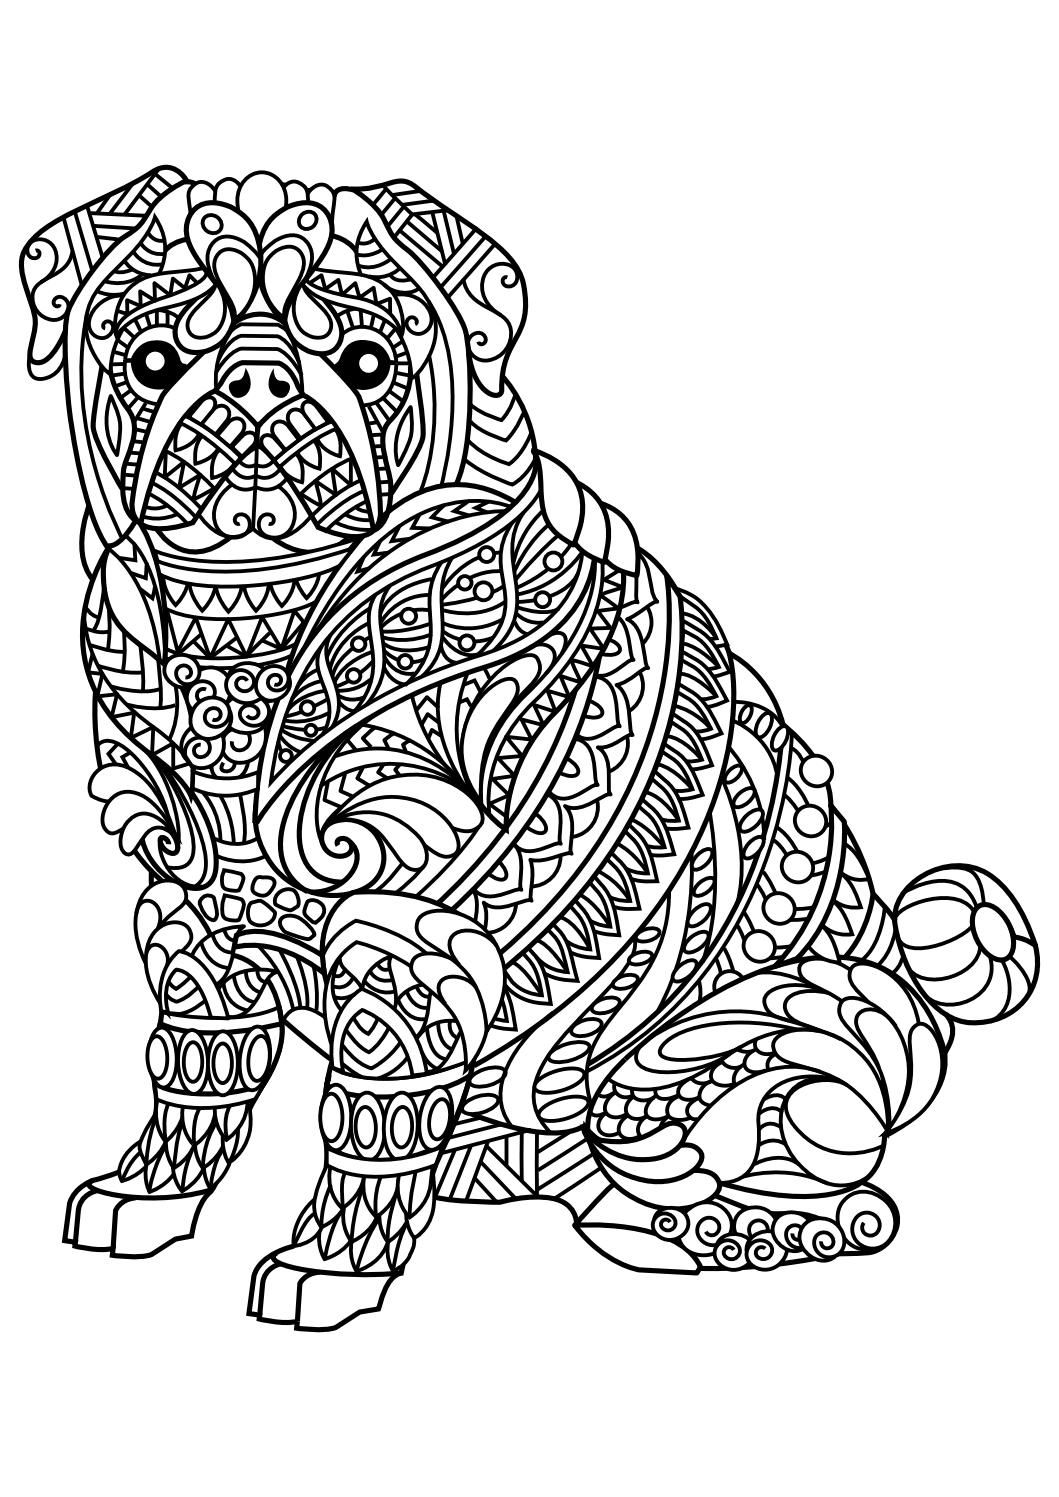 Animal Coloring Pages Pdf Horse Coloring Pages Cat Coloring